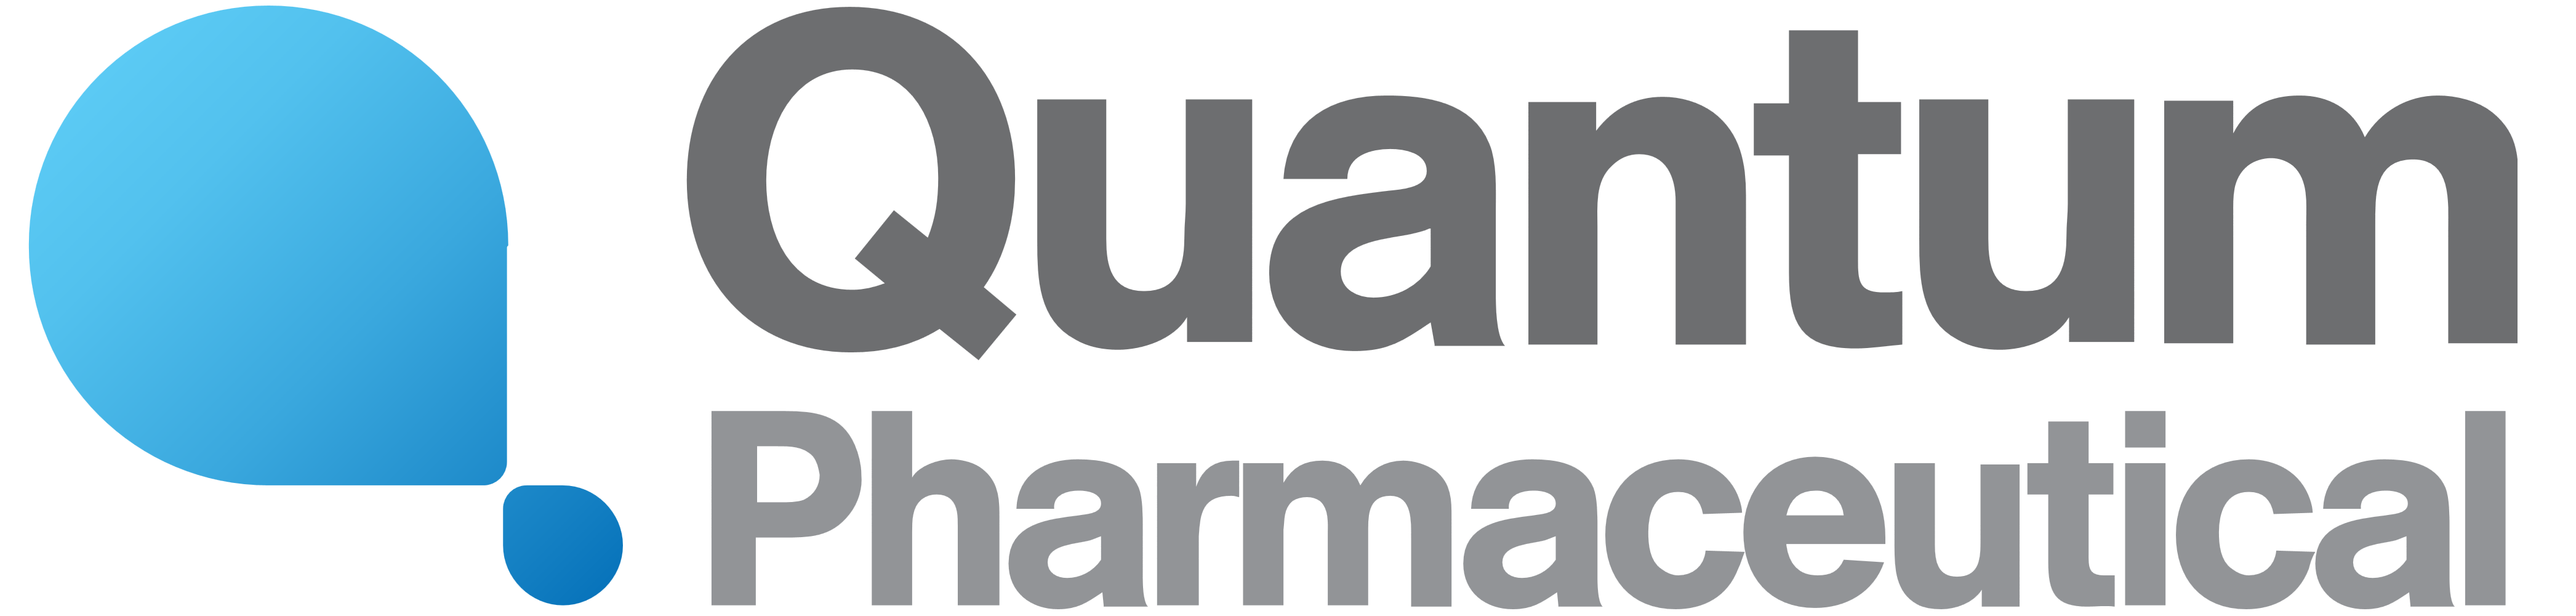 Quantum pharma launches mucodis vaginal cream for cancer side effects